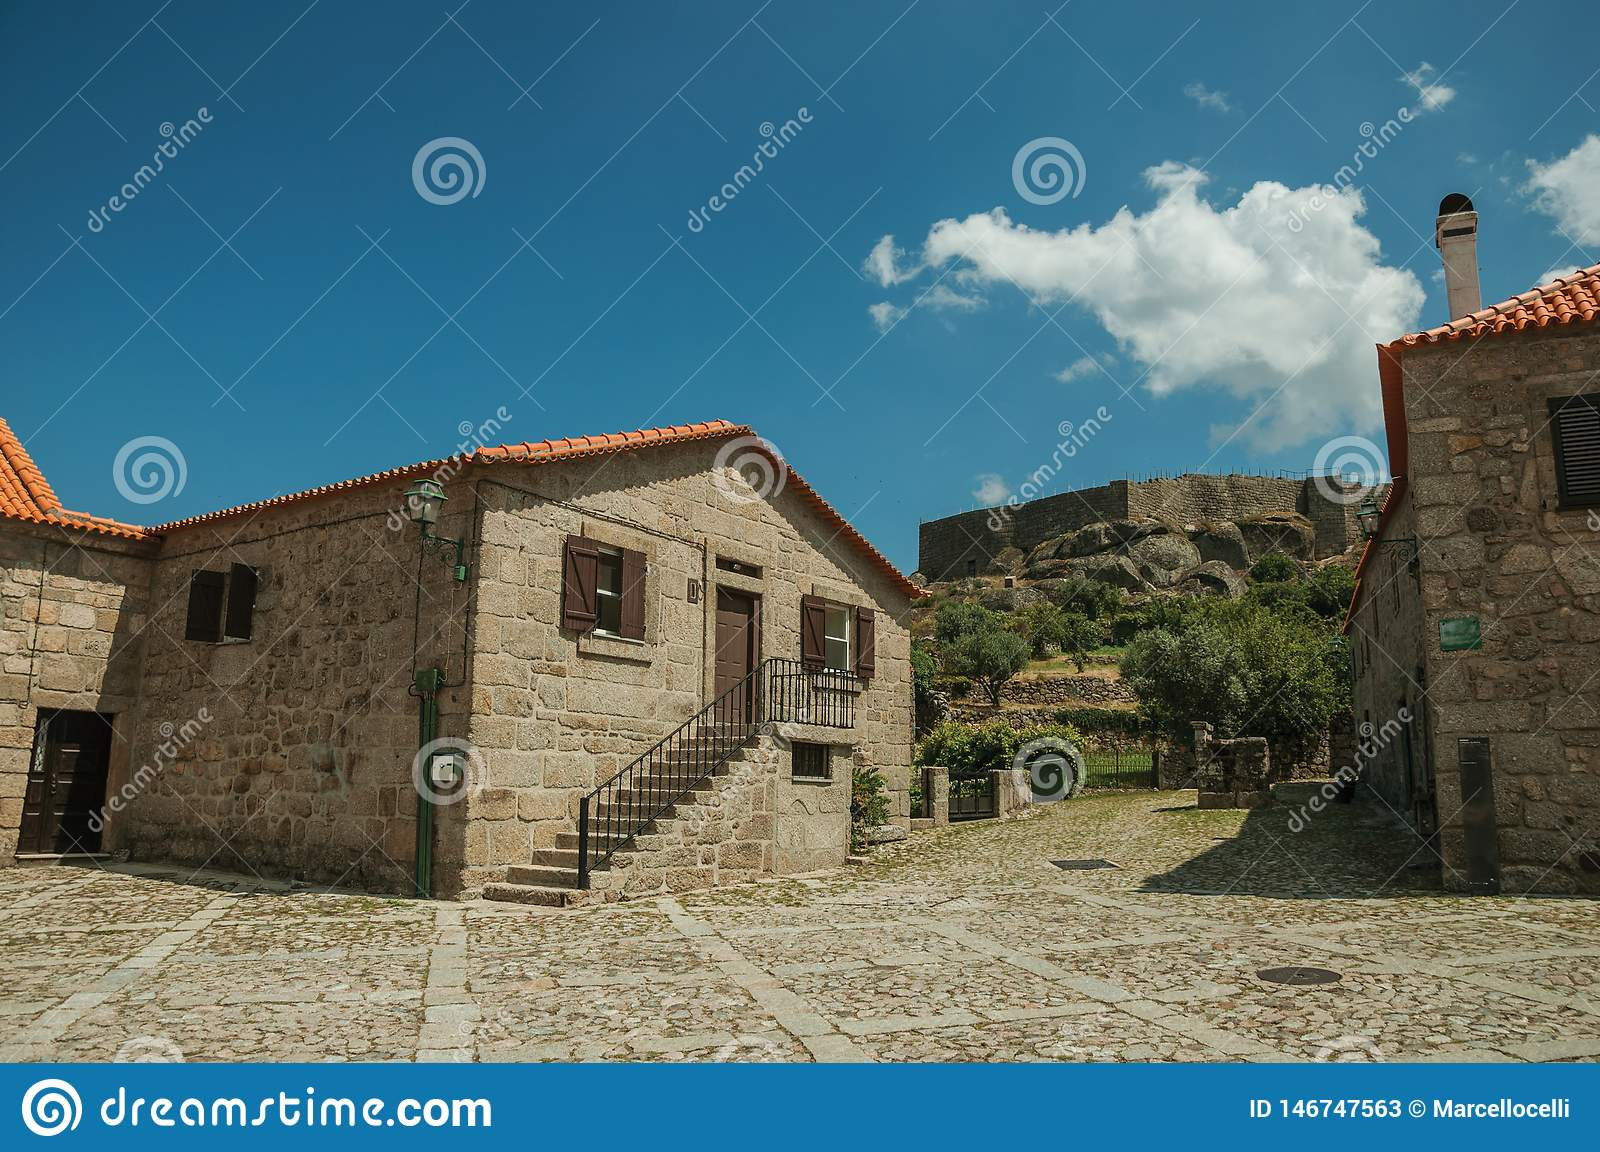 Old stone house on cobblestone alley and castle wall